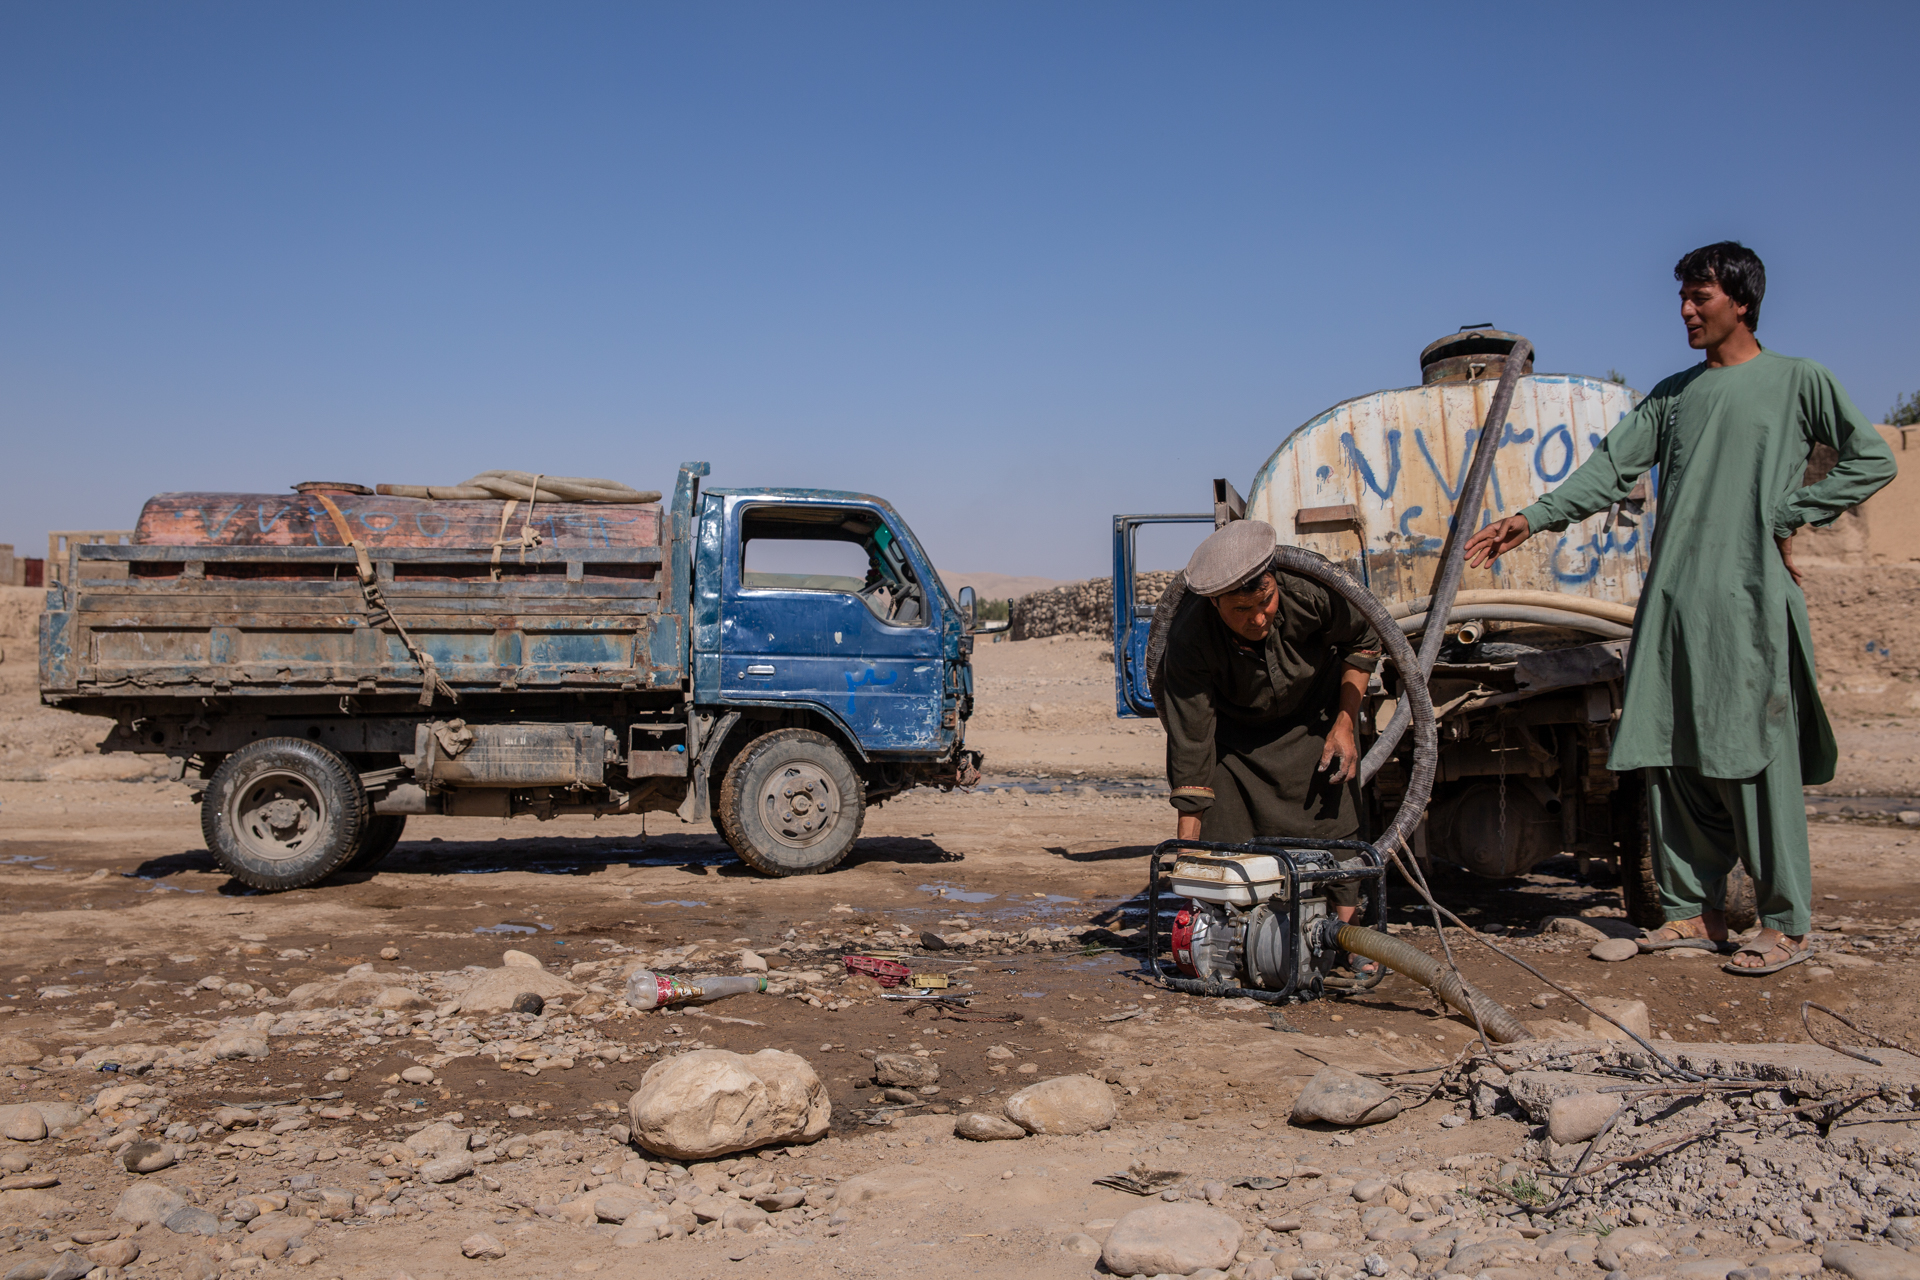 Two men in Afghanistan with trucks and a water pump in the dirt